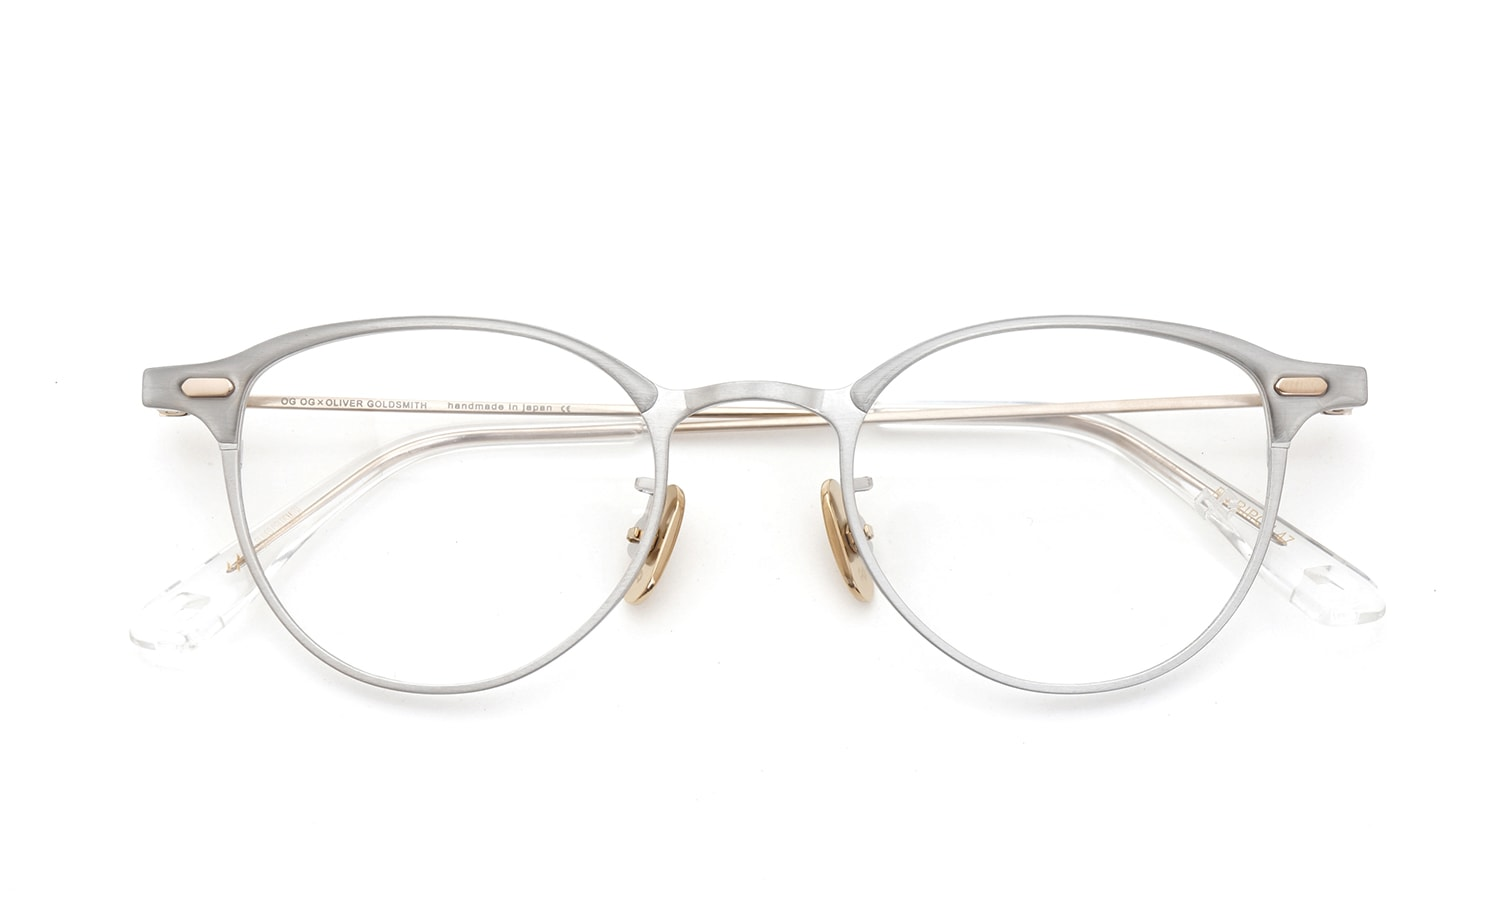 OG × OLIVER GOLDSMITH Re:RIPON 47 リ:リポン 4